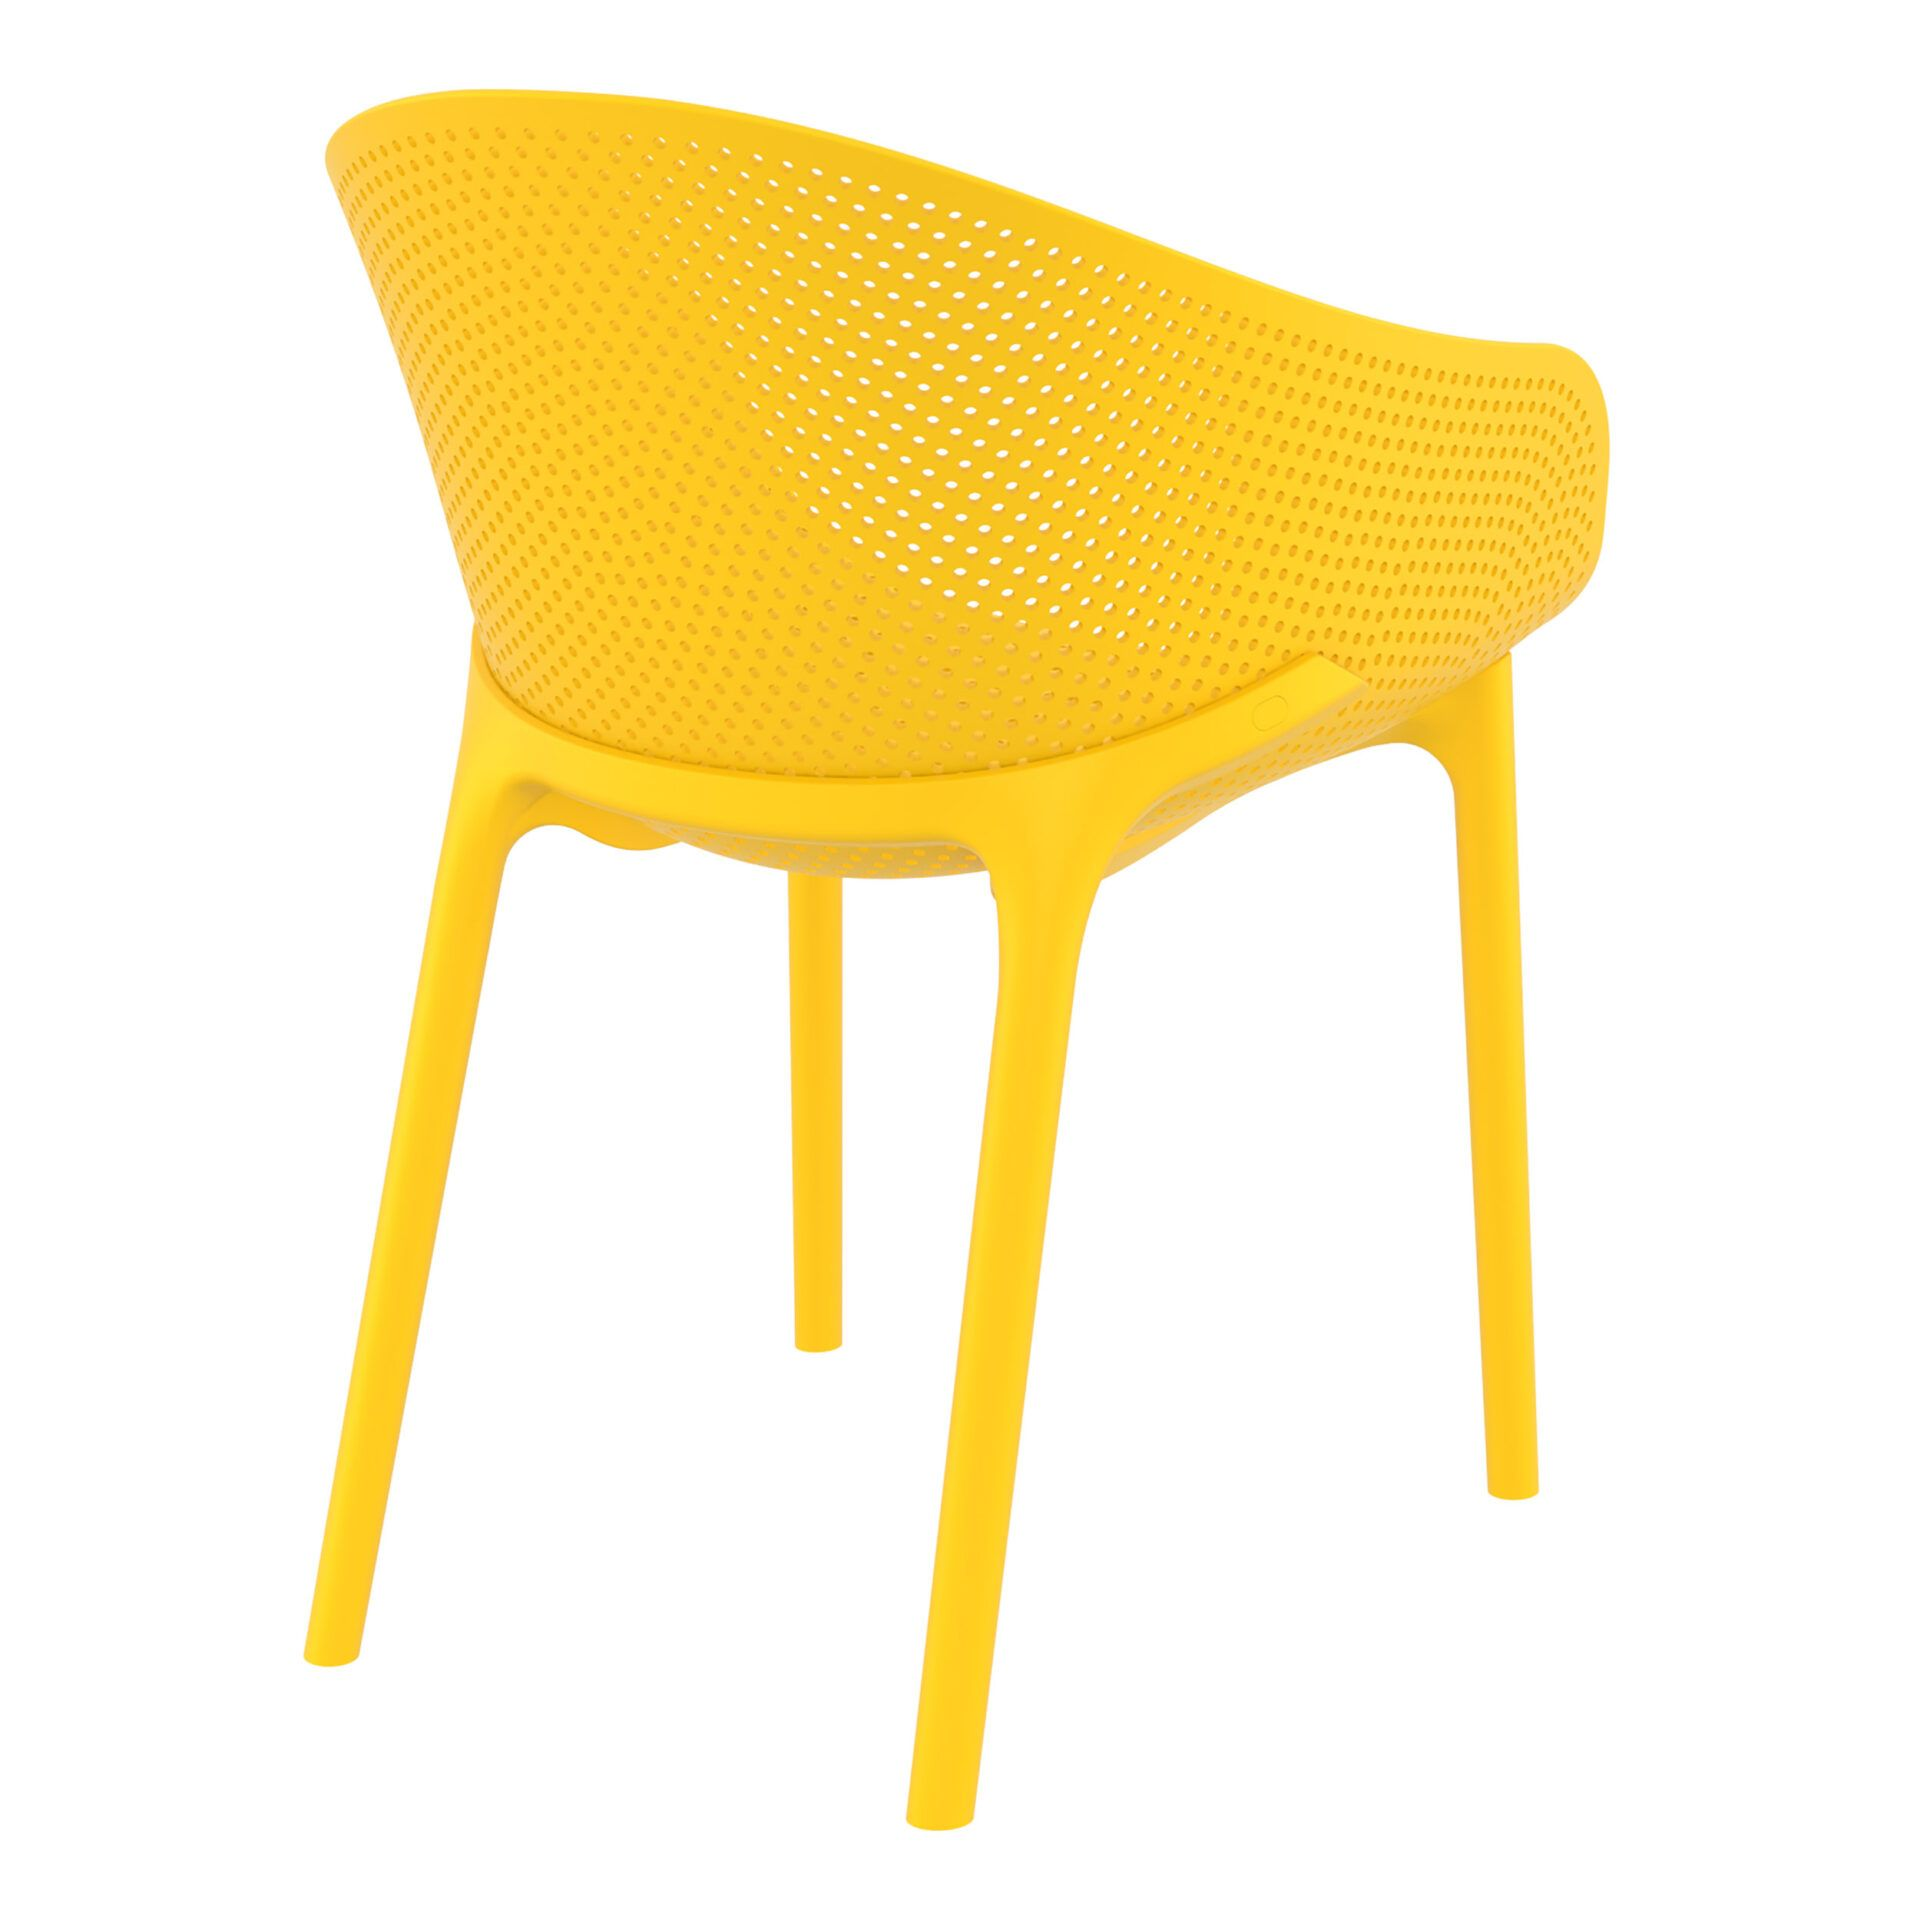 outdoor seating polypropylene sky chair yellow back side